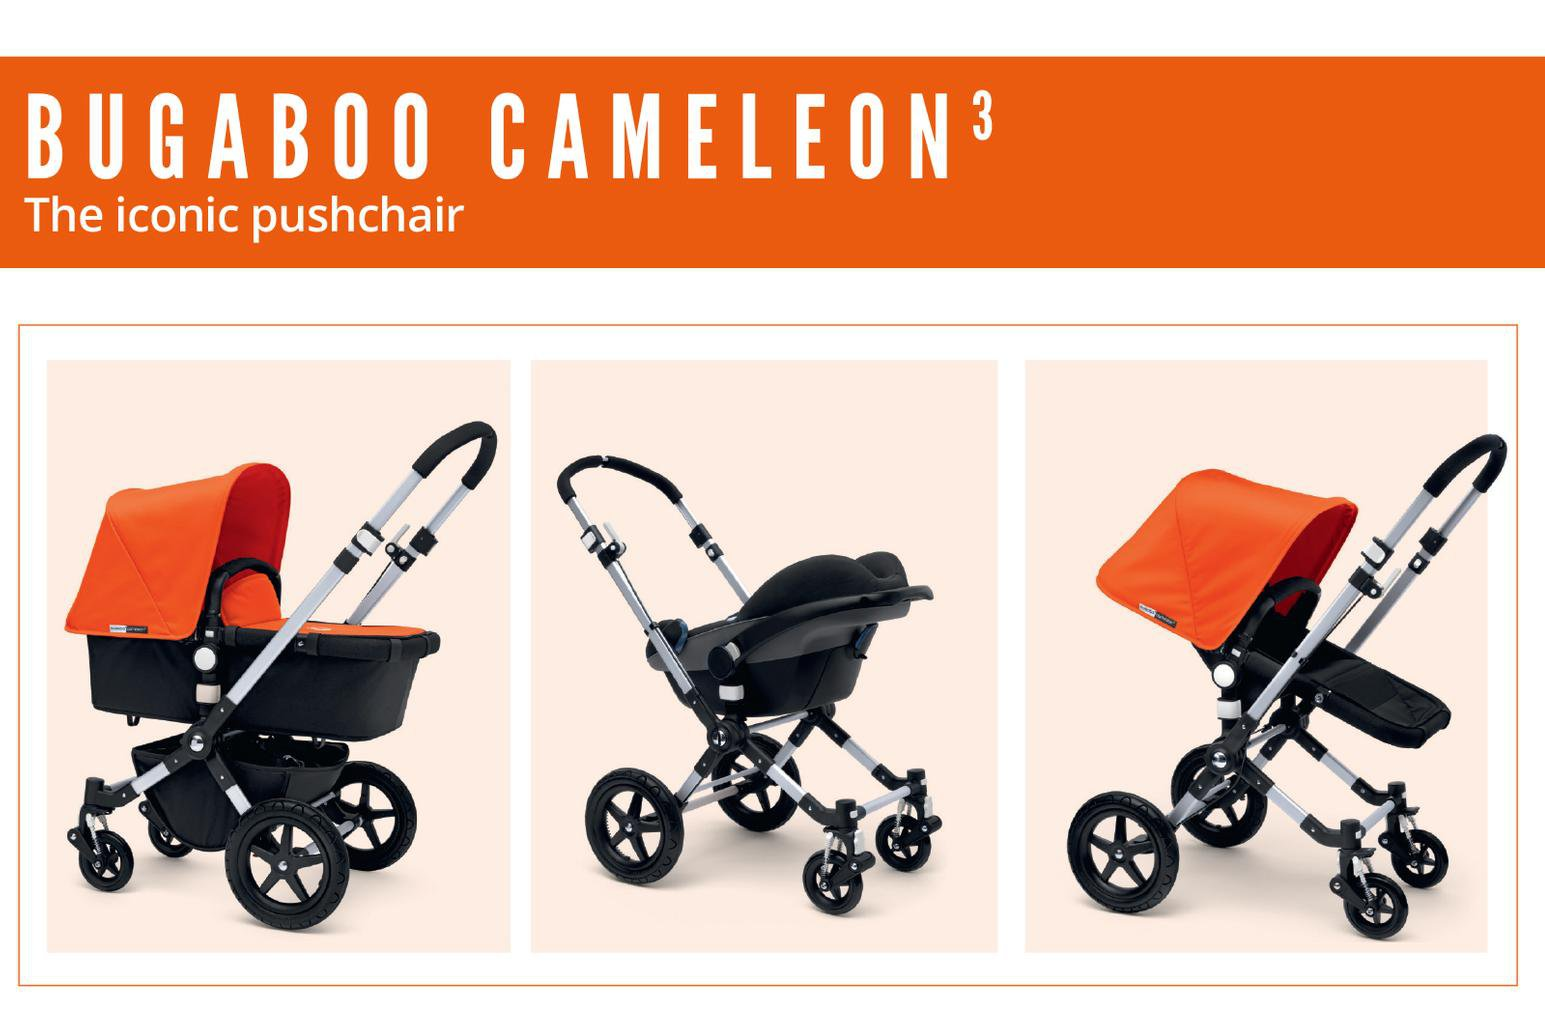 Bugaboo Promotion - What journey determines your style?